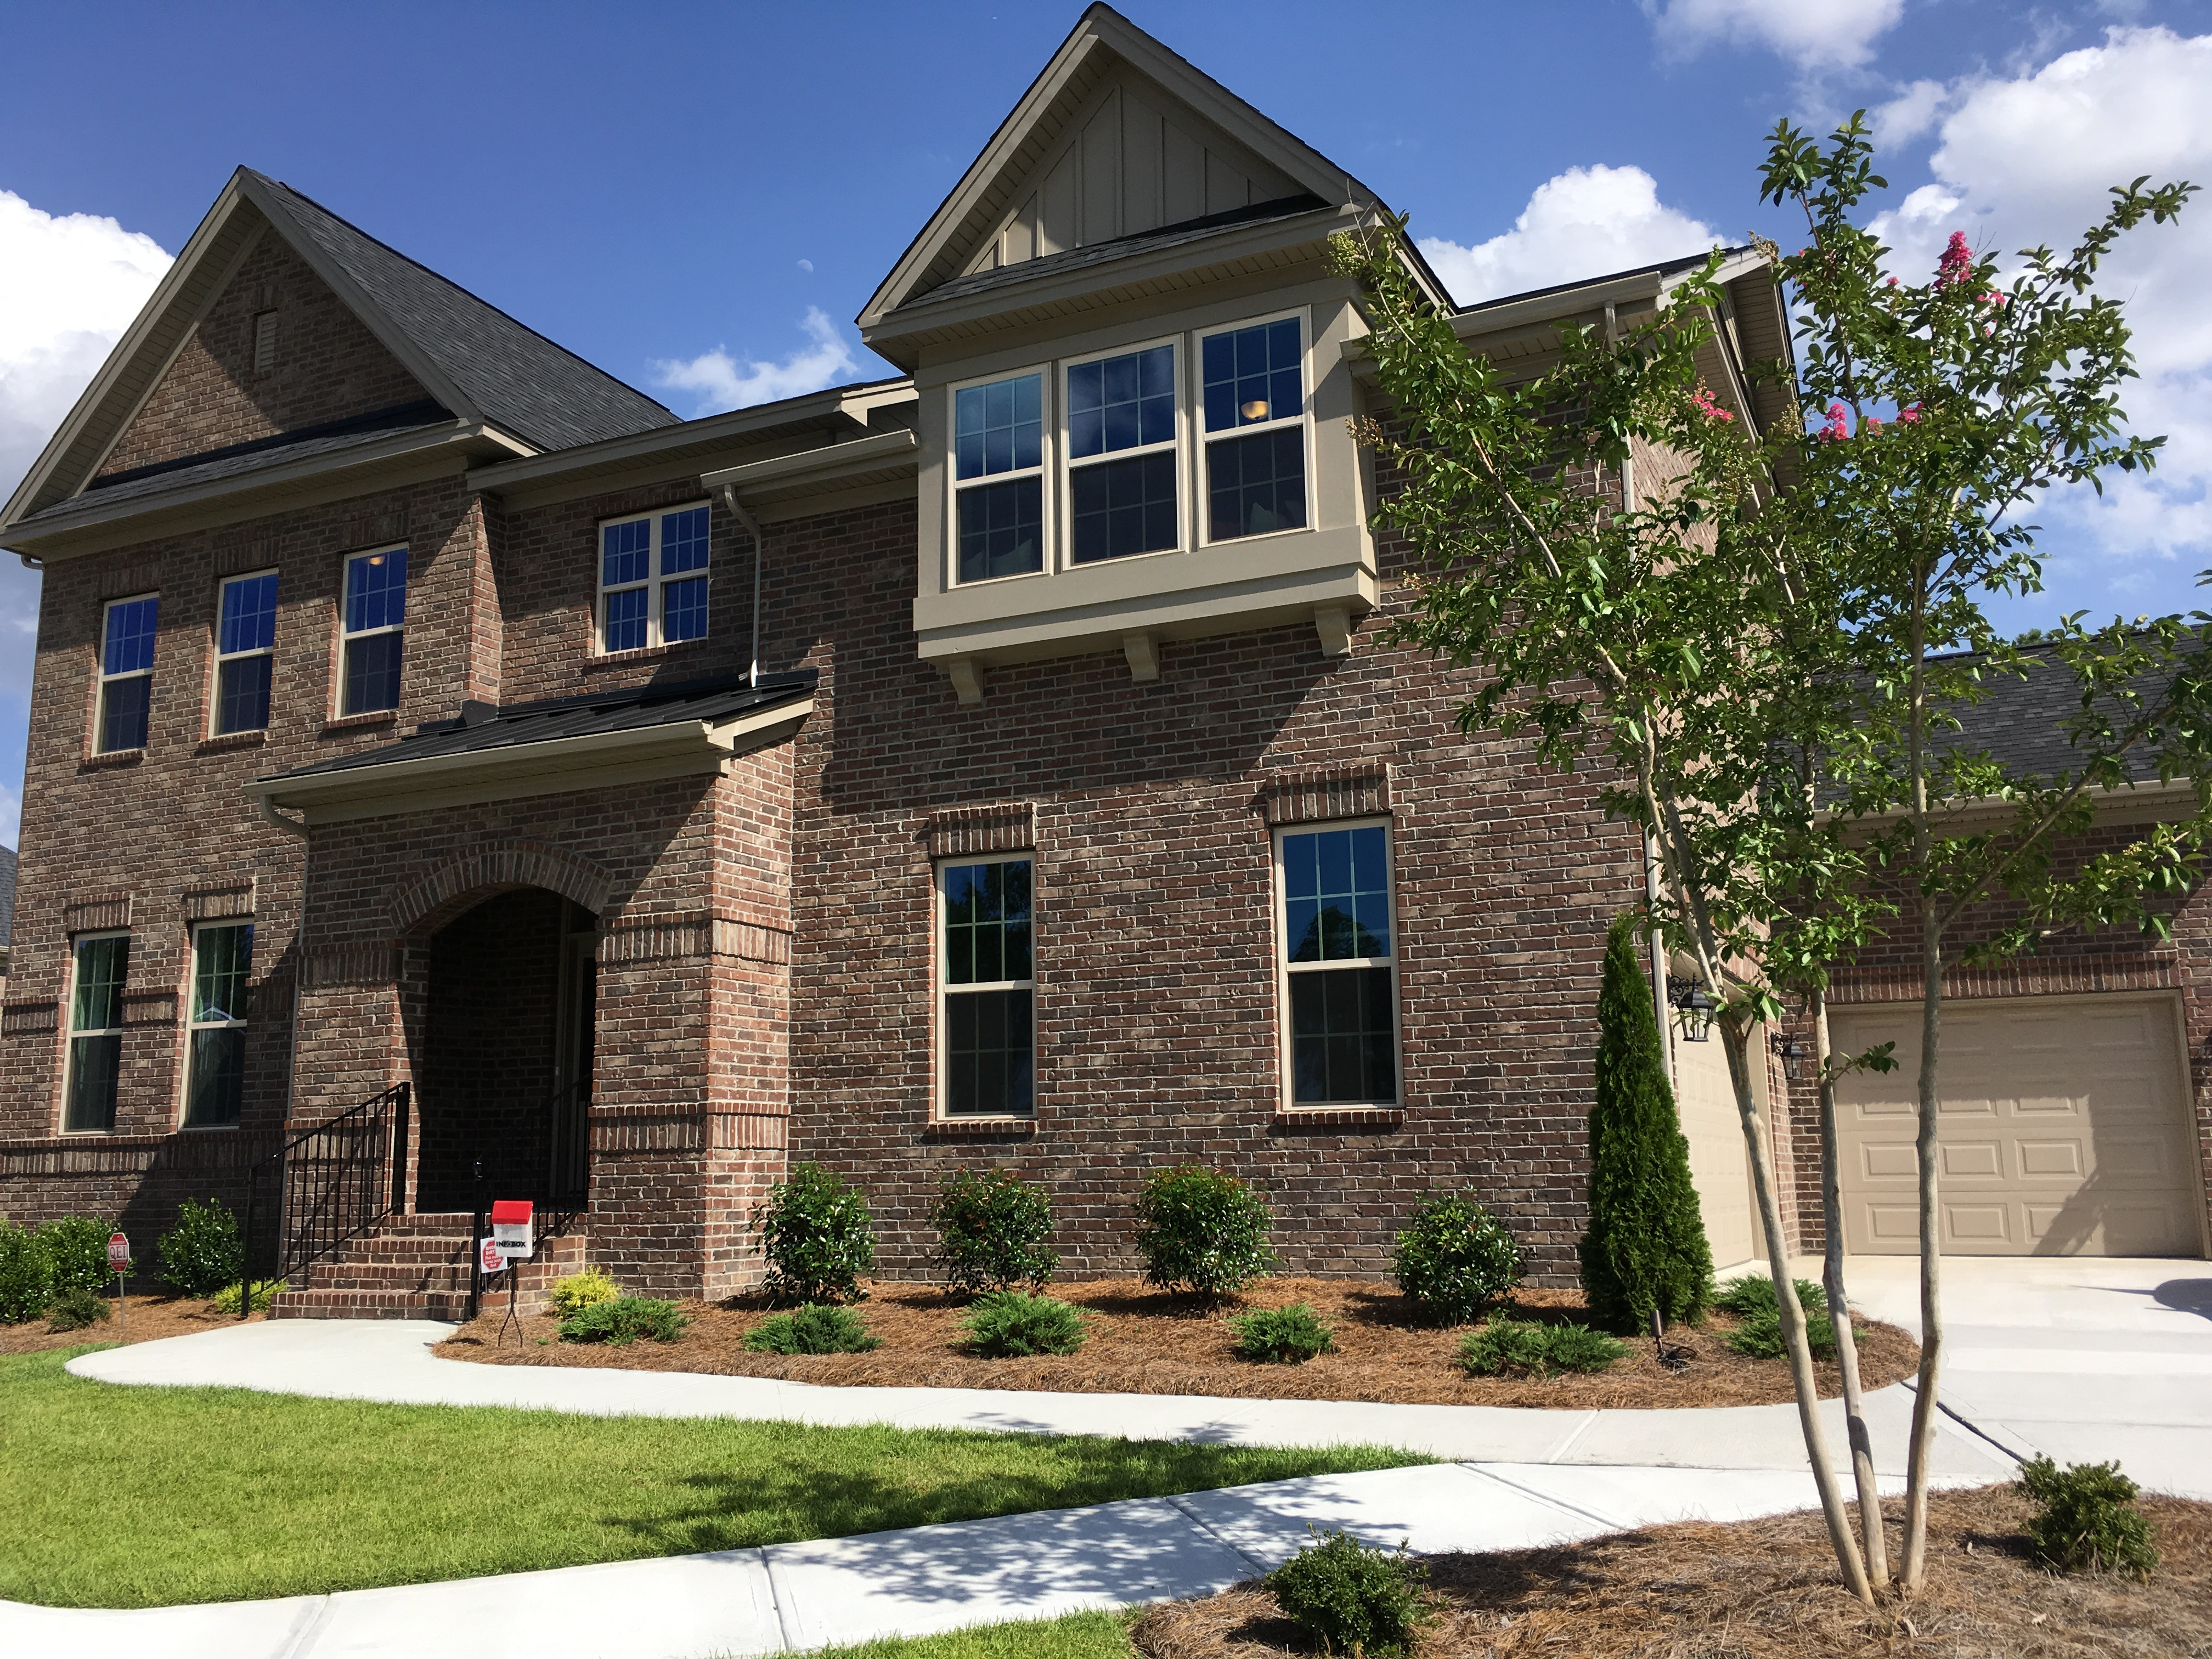 Elgin, SC Homes for Sale in The Crossing at Woodcreek Farms